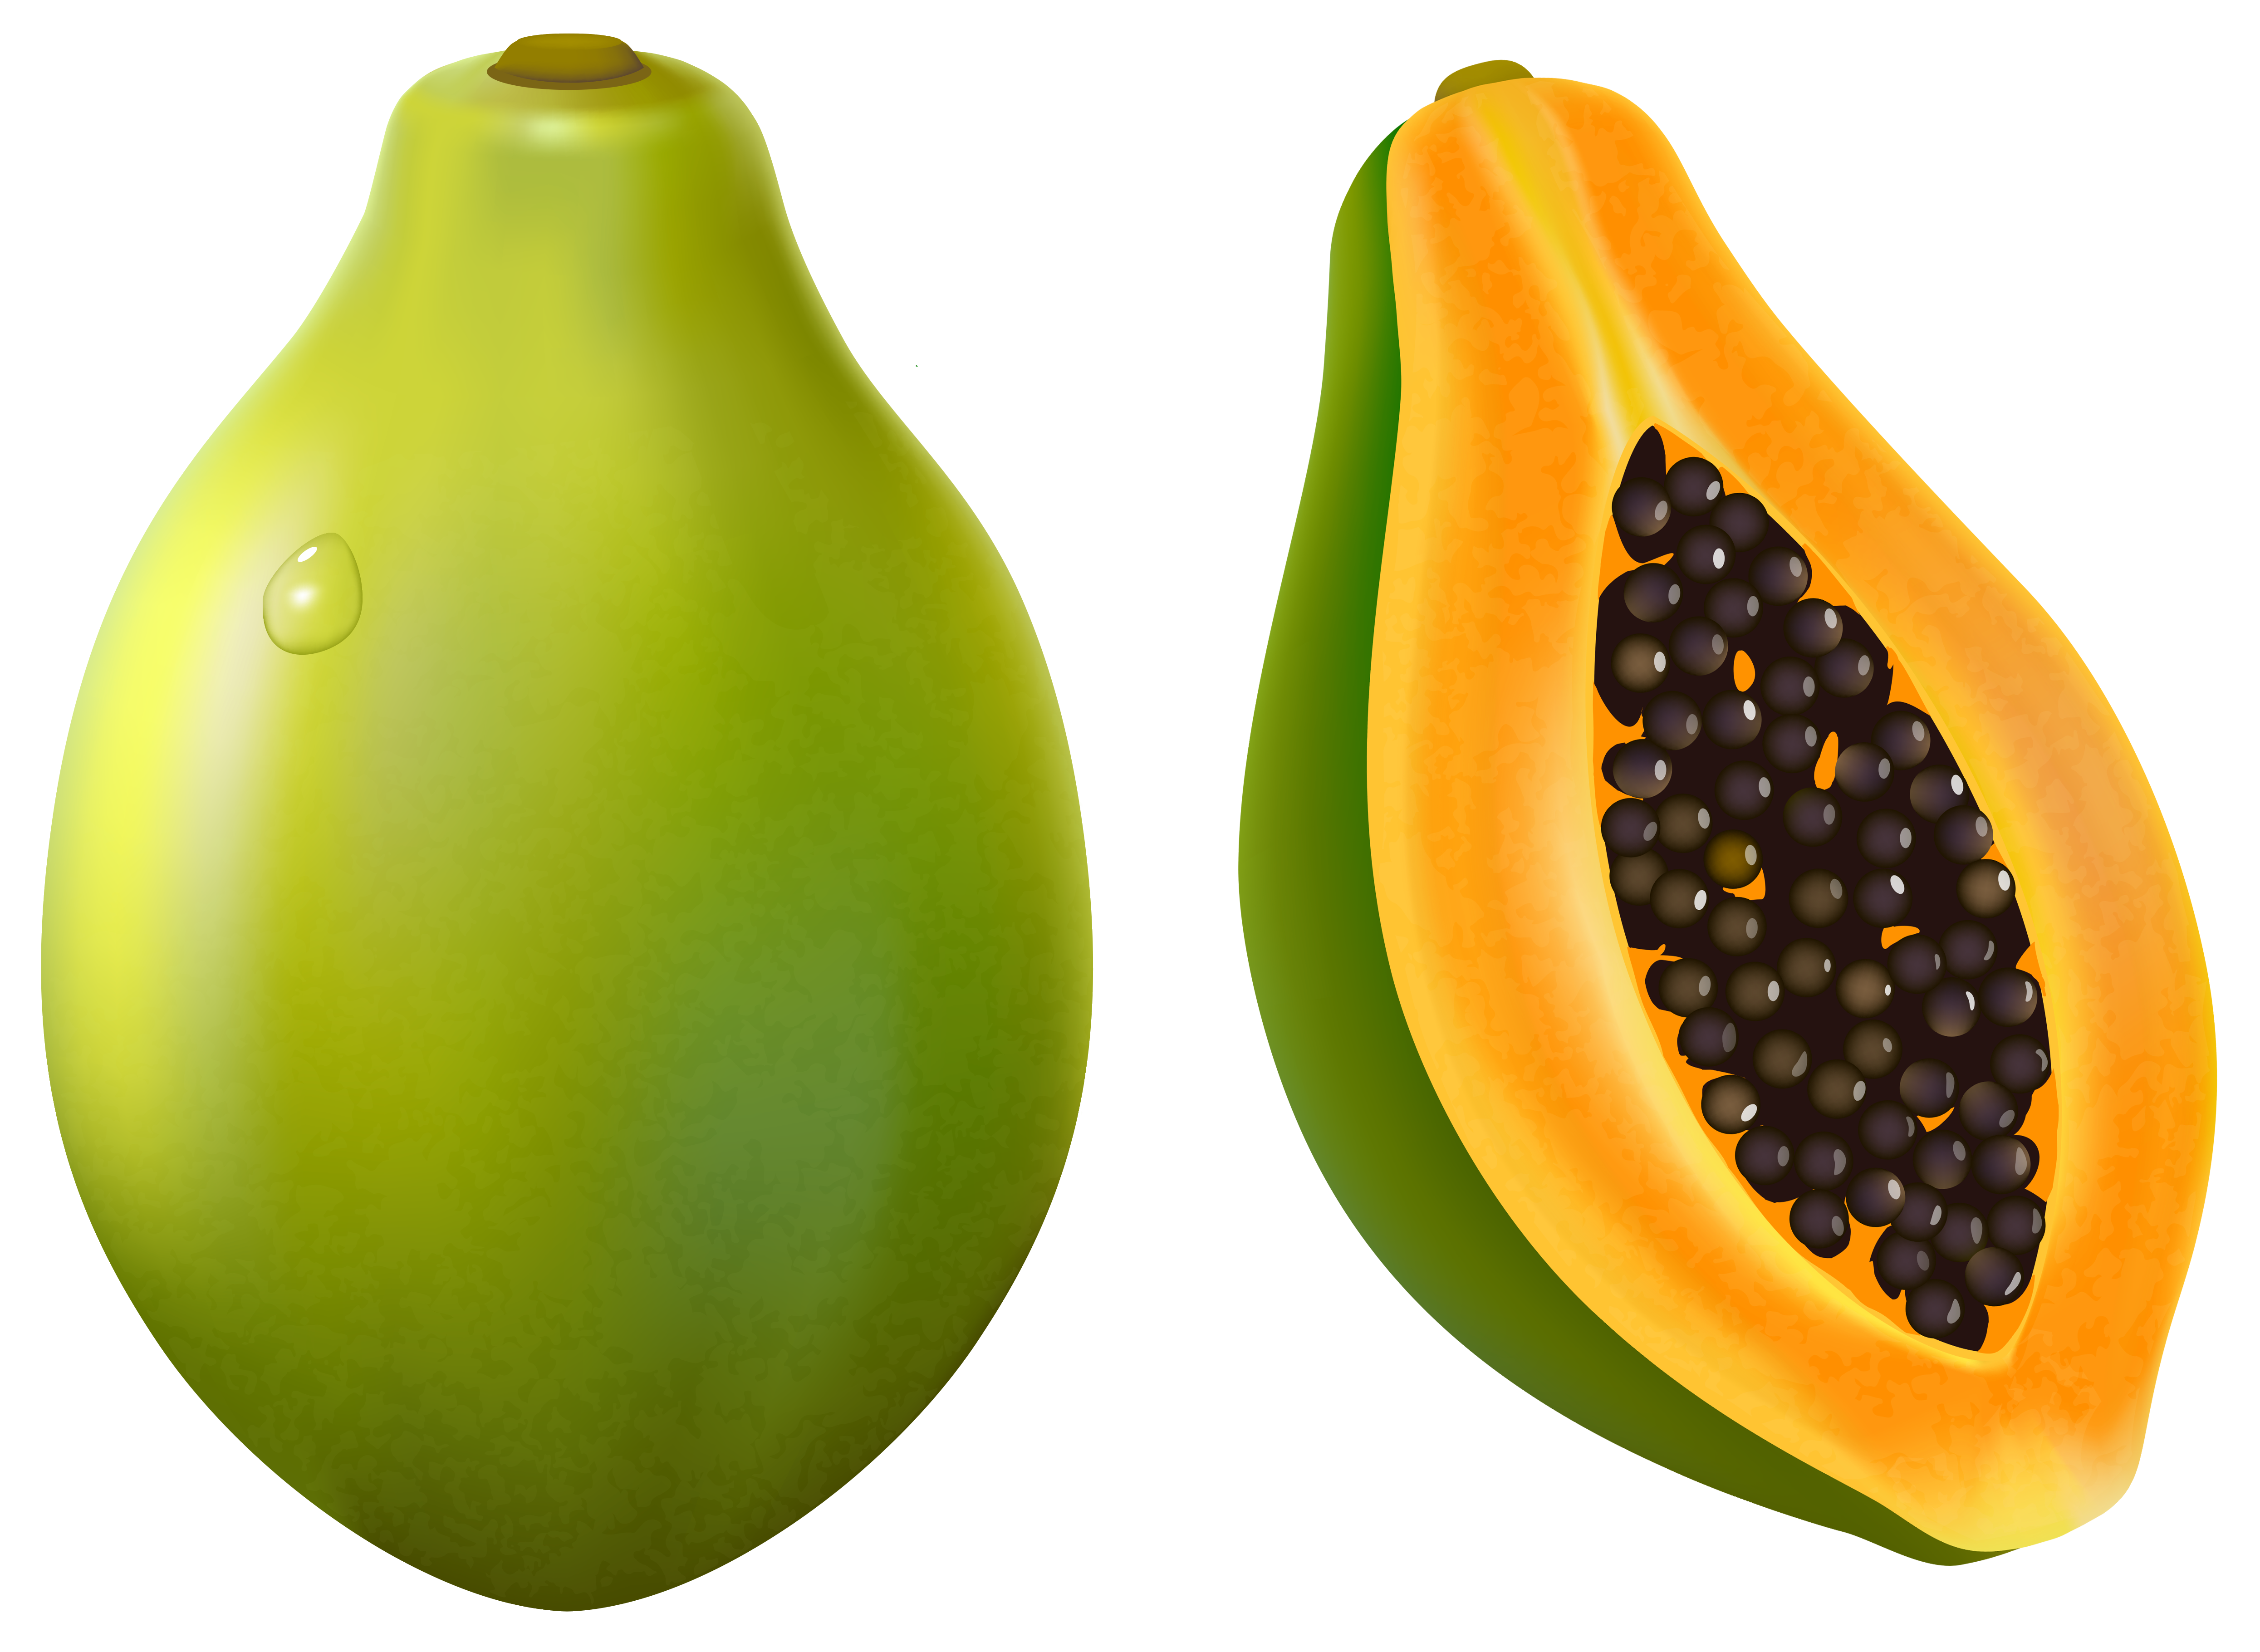 papaya clipart - photo #5